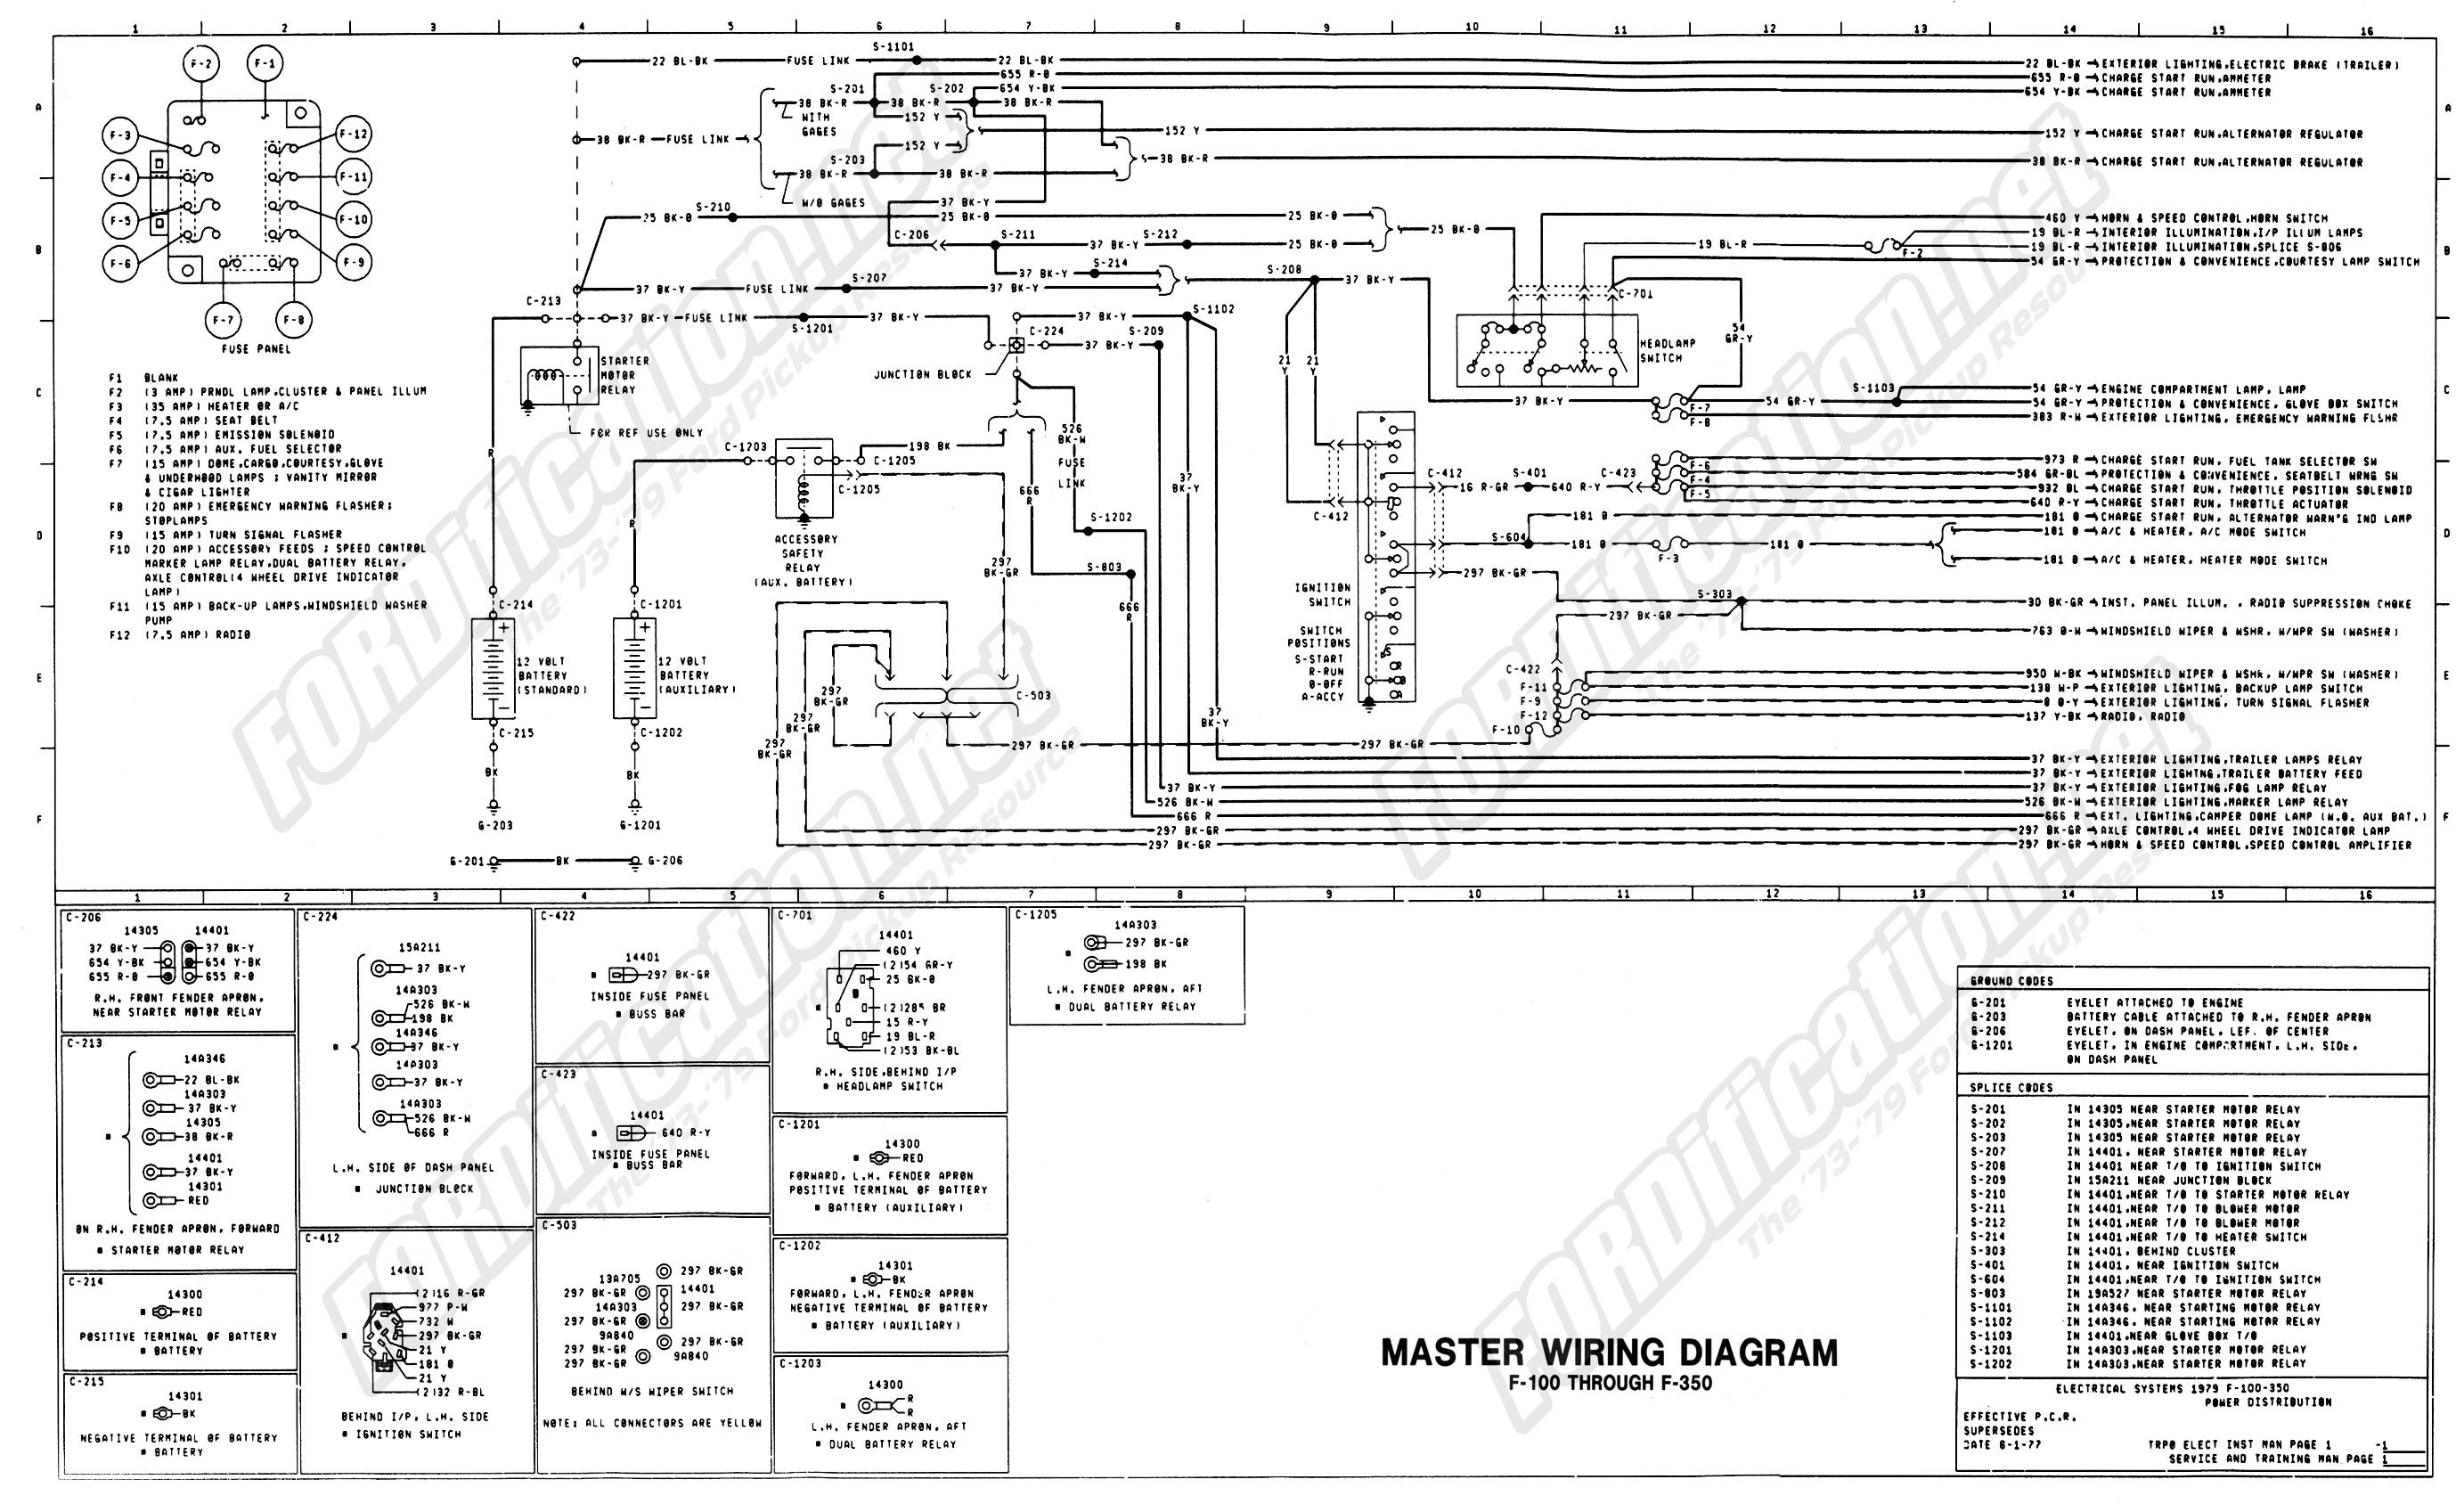 Ford 6 0 Engine Diagram 79 F150 solenoid Wiring Diagram ford Truck Enthusiasts forums Of Ford 6 0 Engine Diagram